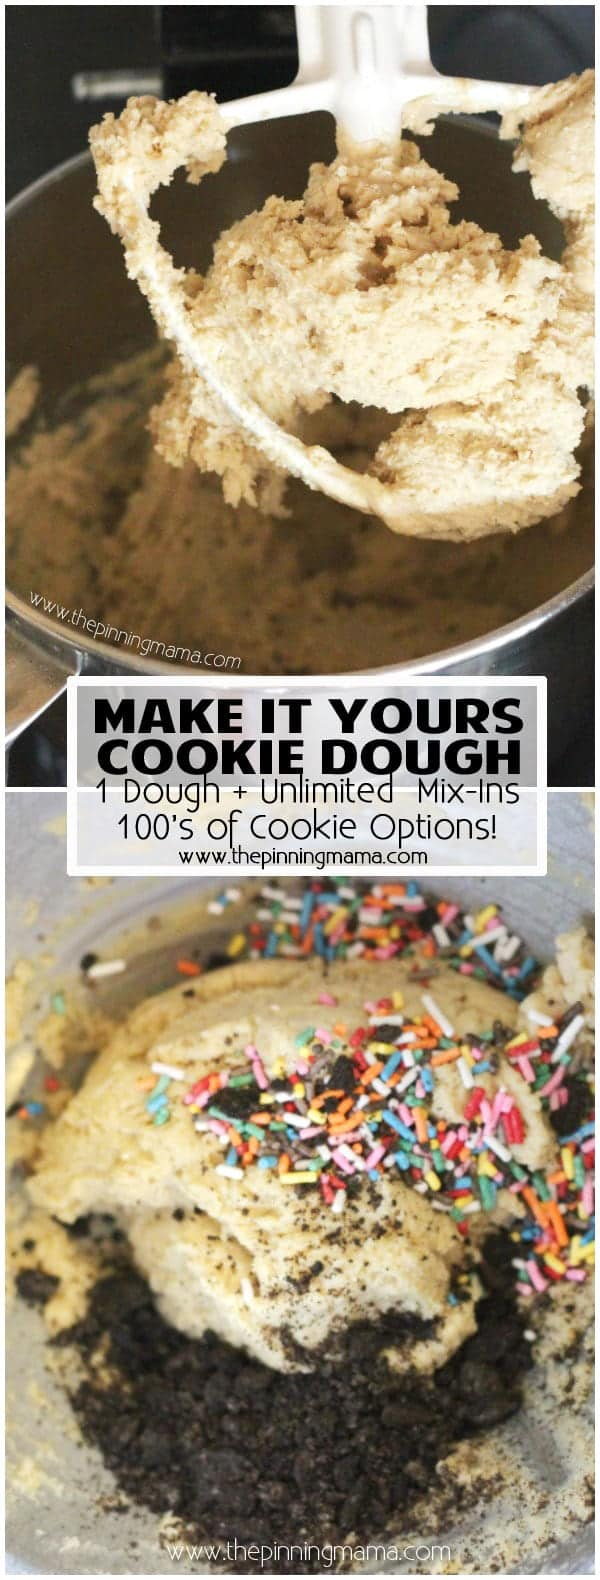 Basic Soft & Chewy Cookie Recipe - Use this recipe and add in whatever you want to make your favorite flavor cookies! YUM!